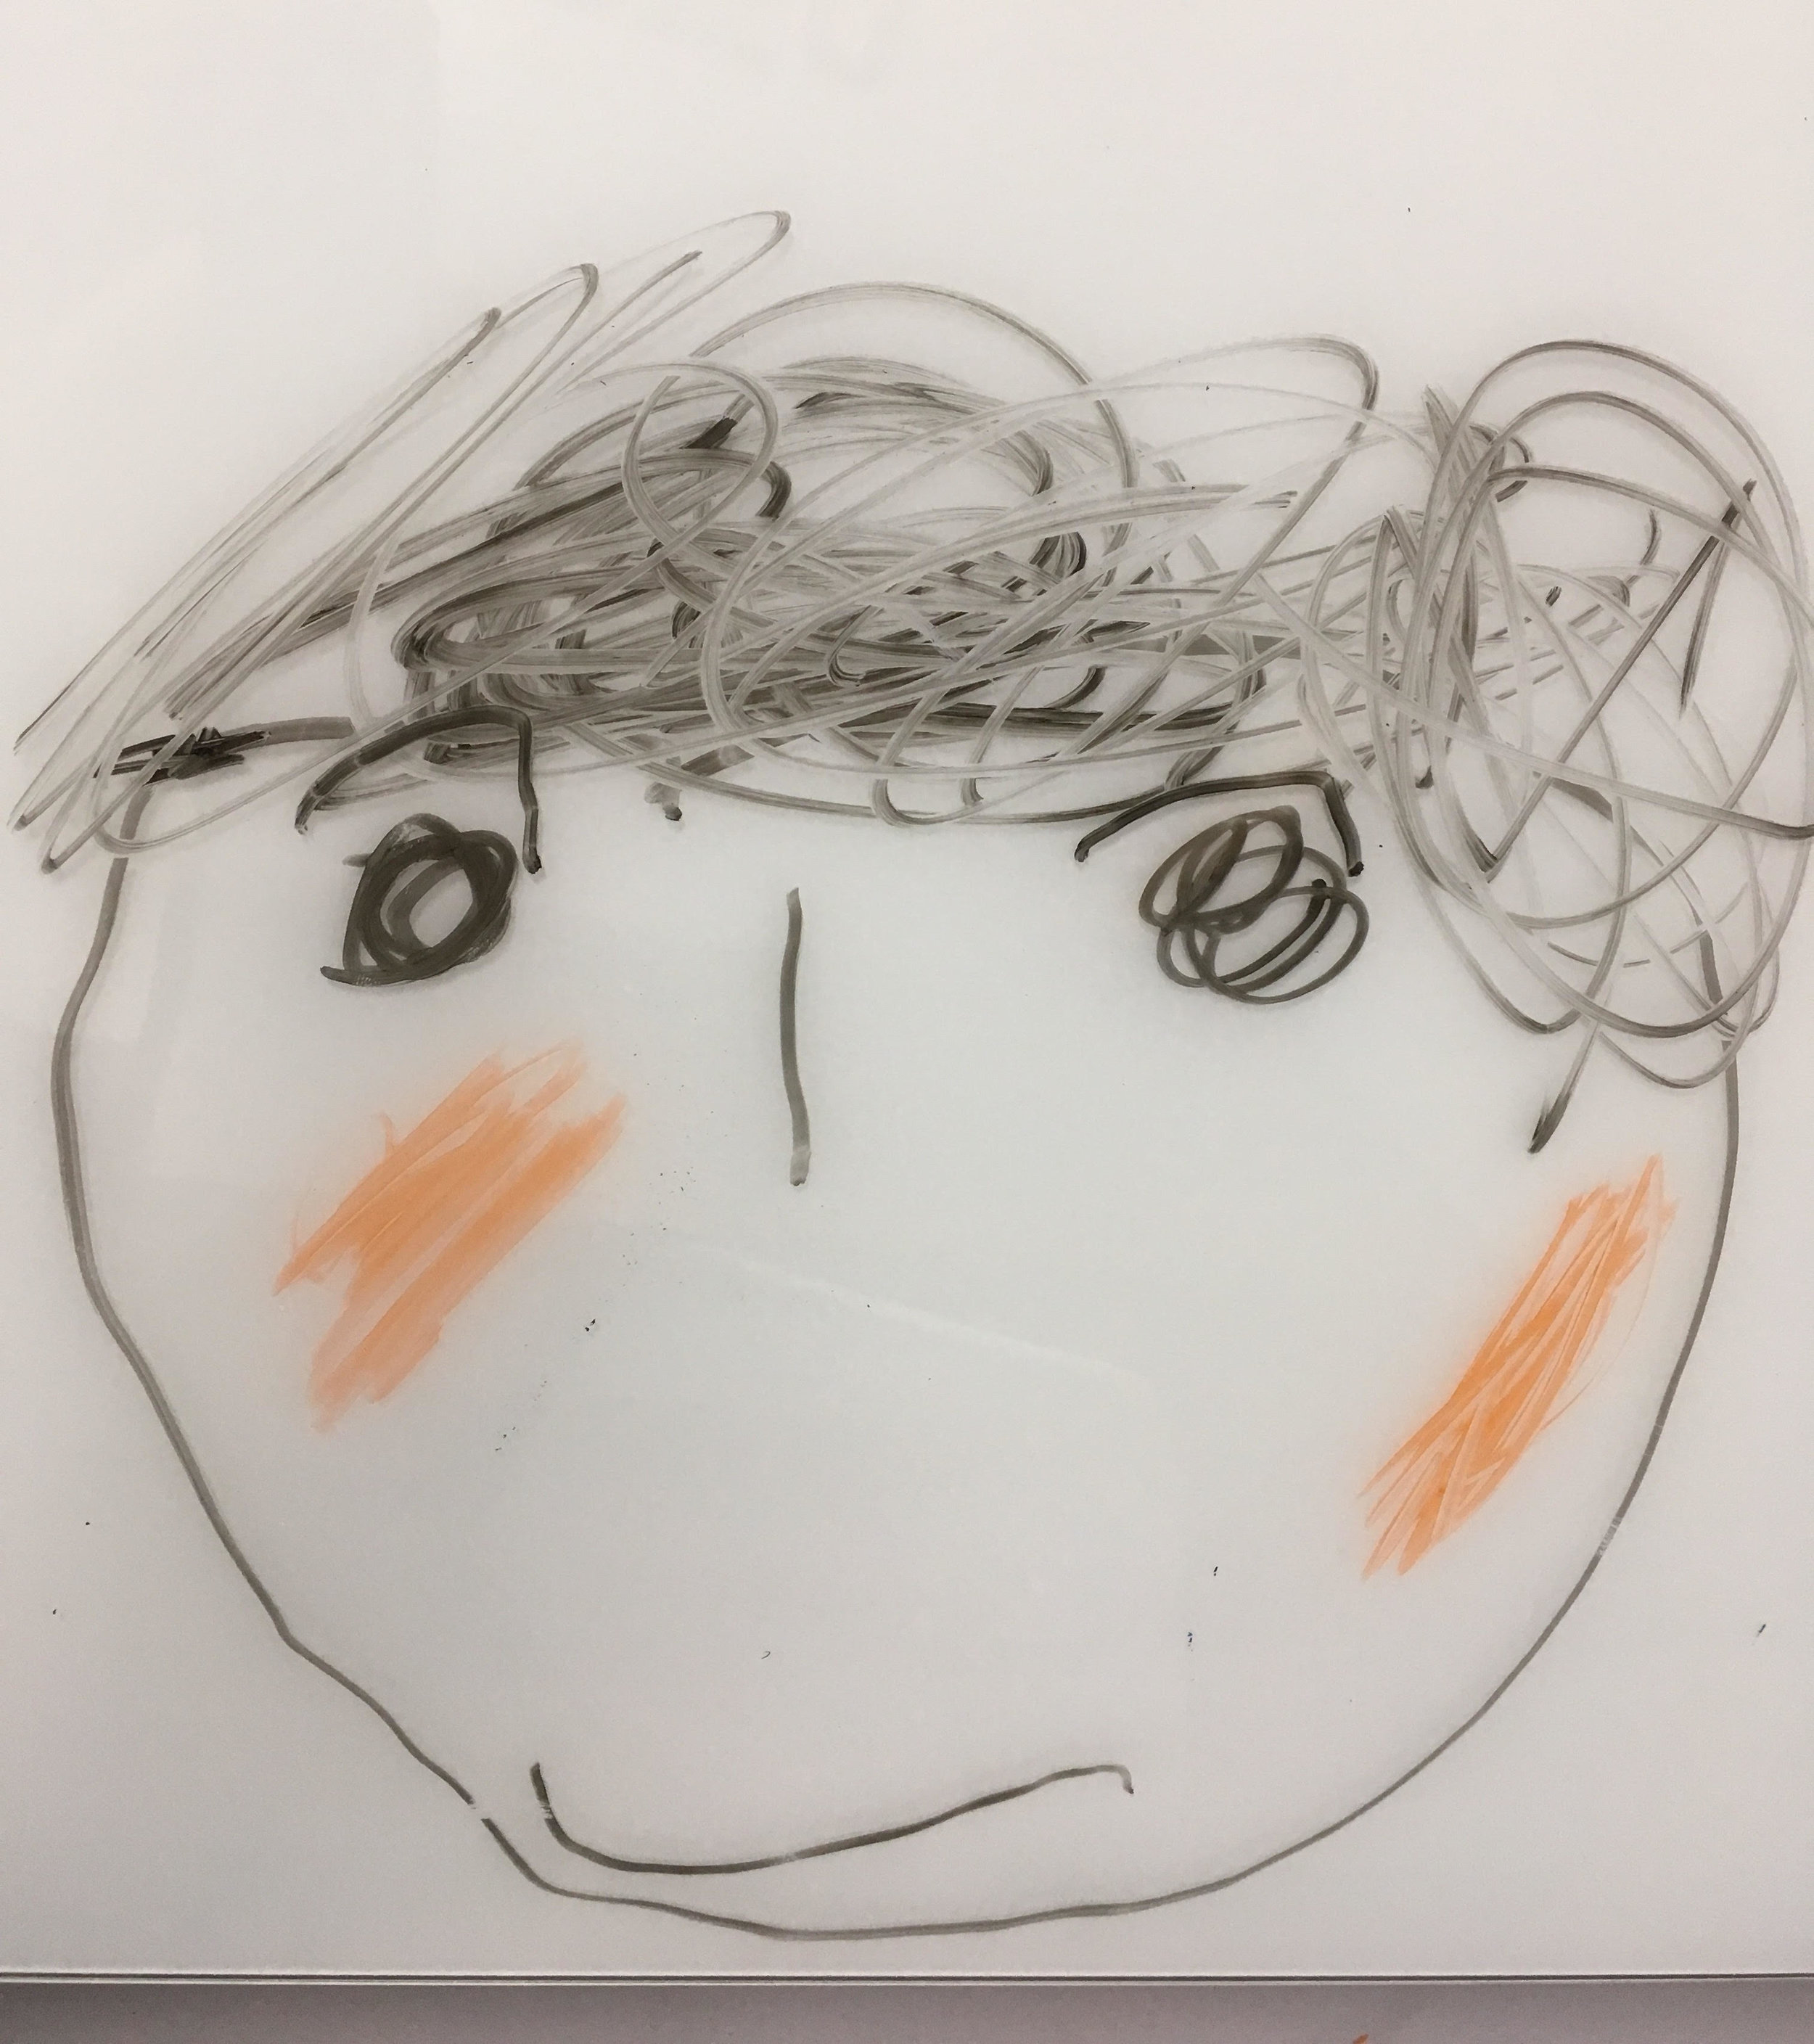 David Moses LeNoir, as drawn by his 3-year-old daughter.